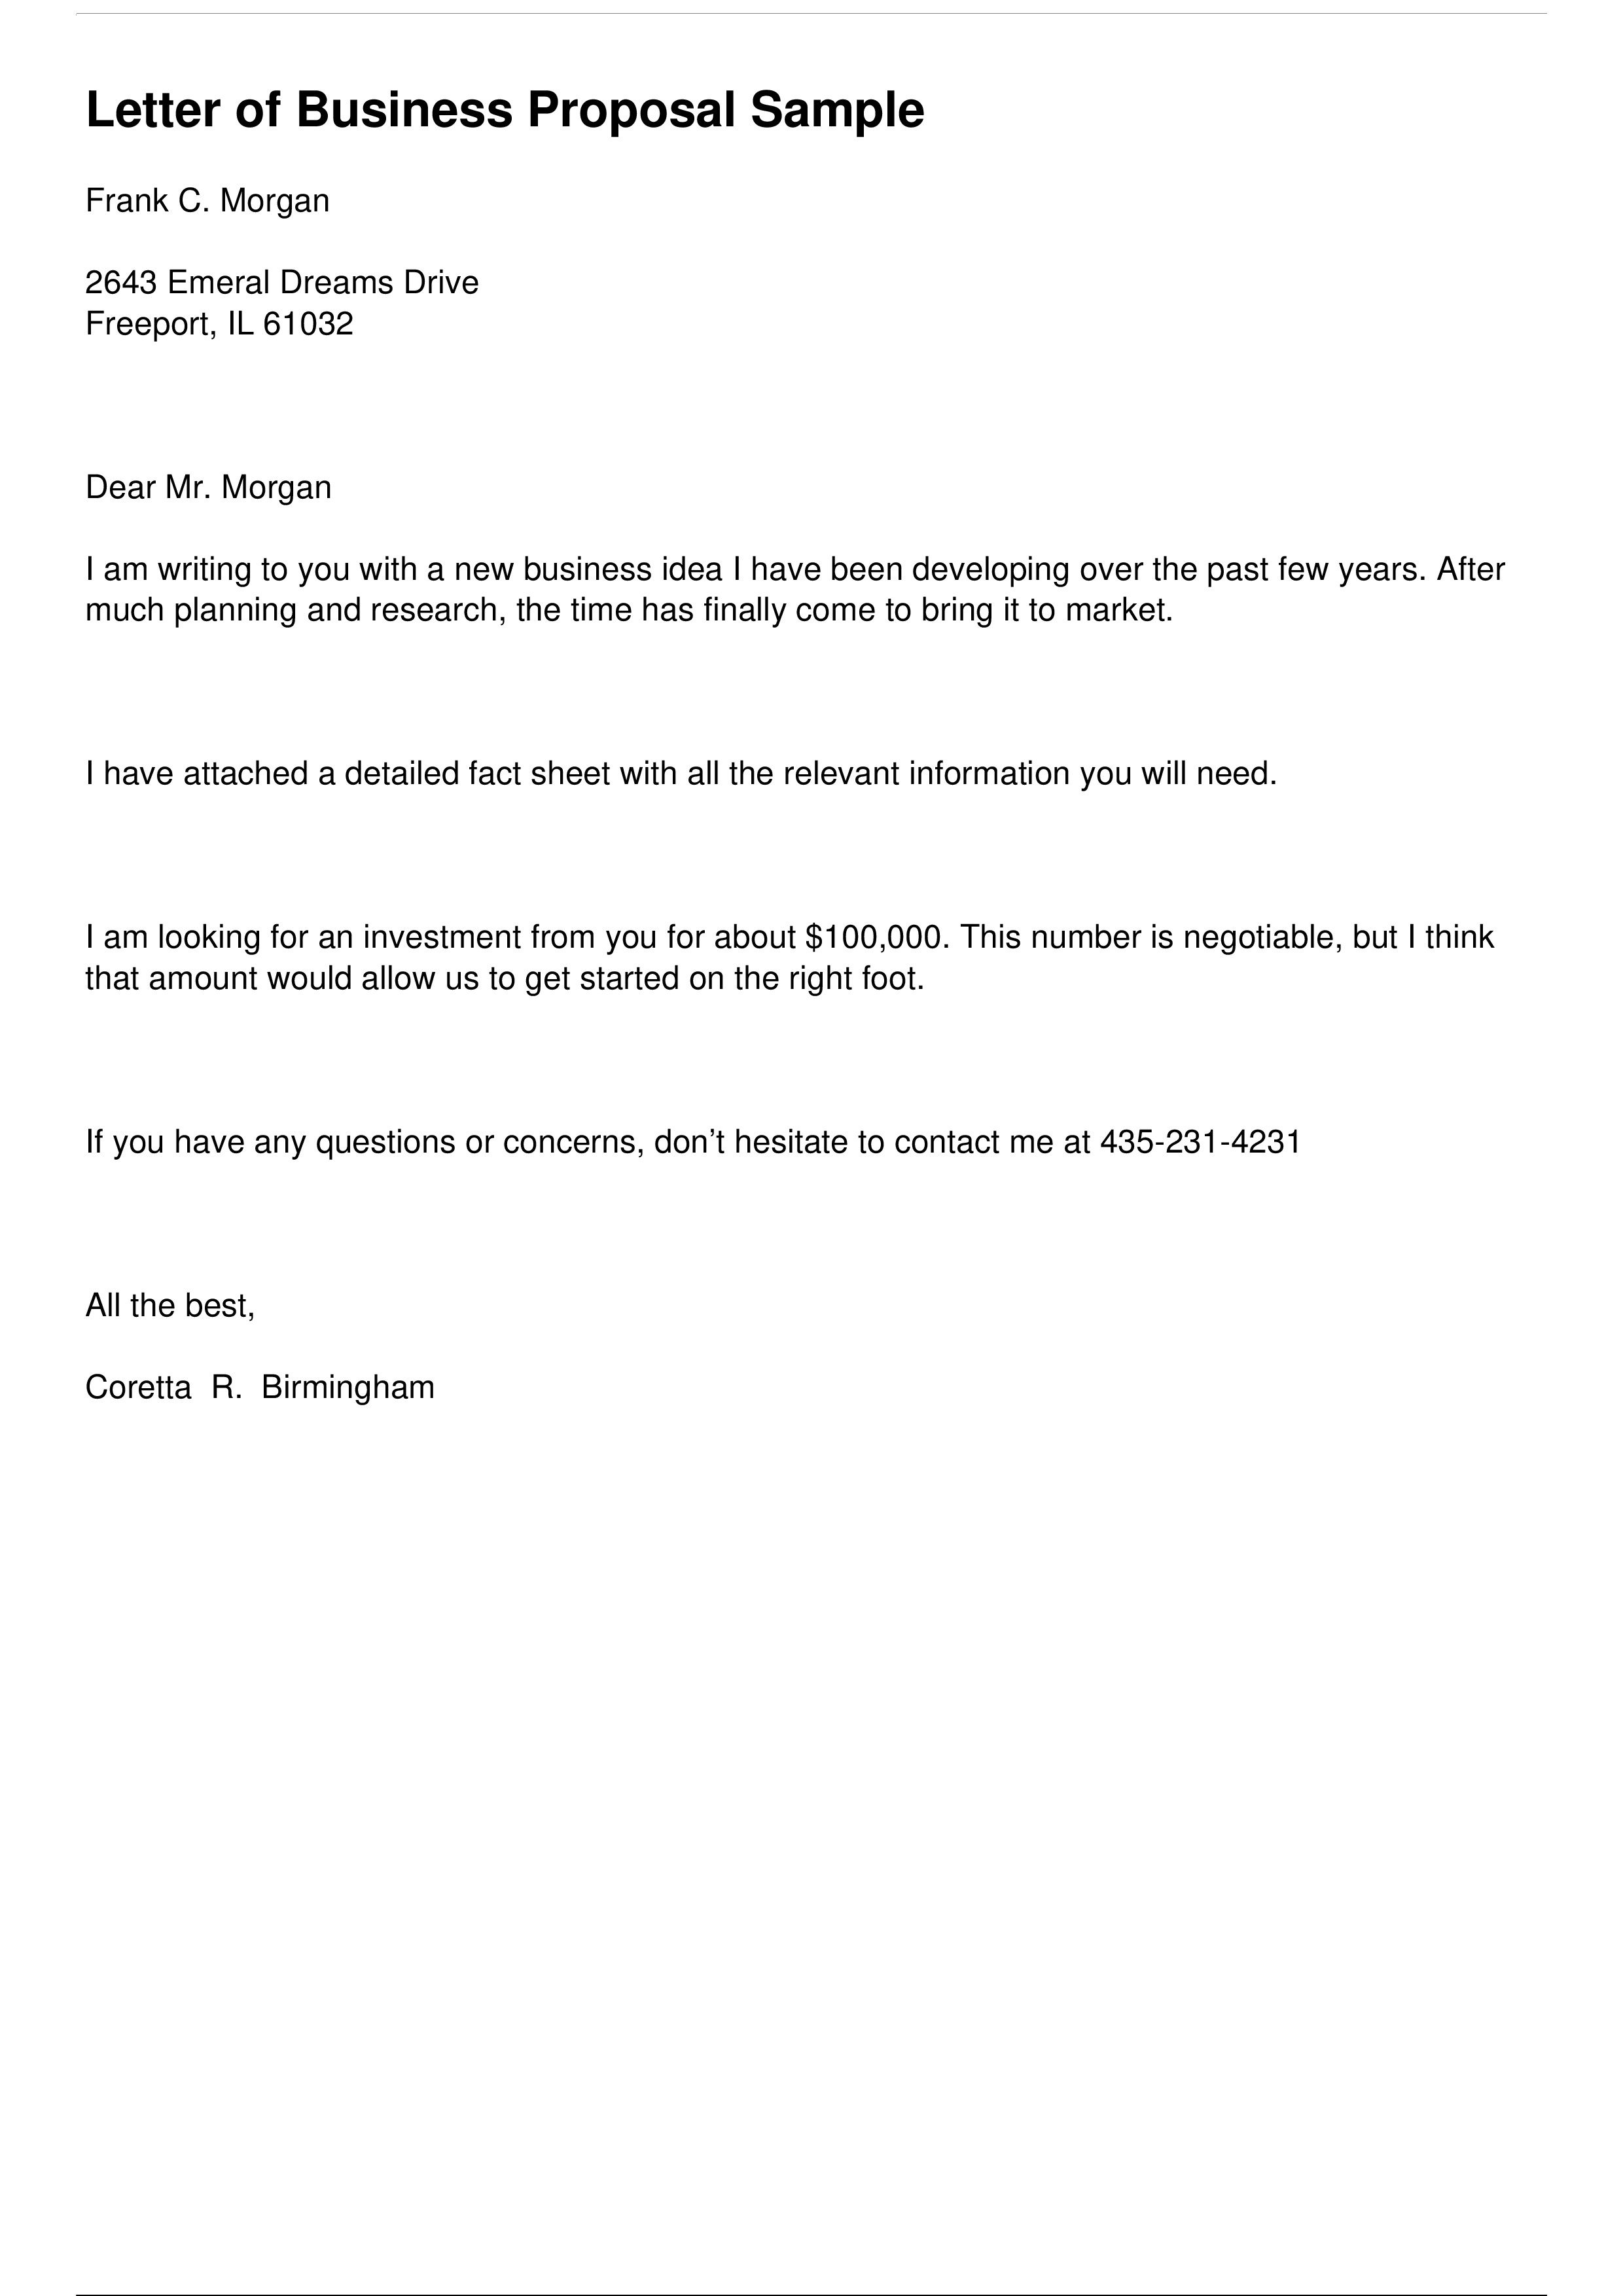 004 Imposing Busines Proposal Letter Template High Resolution  Free DownloadFull